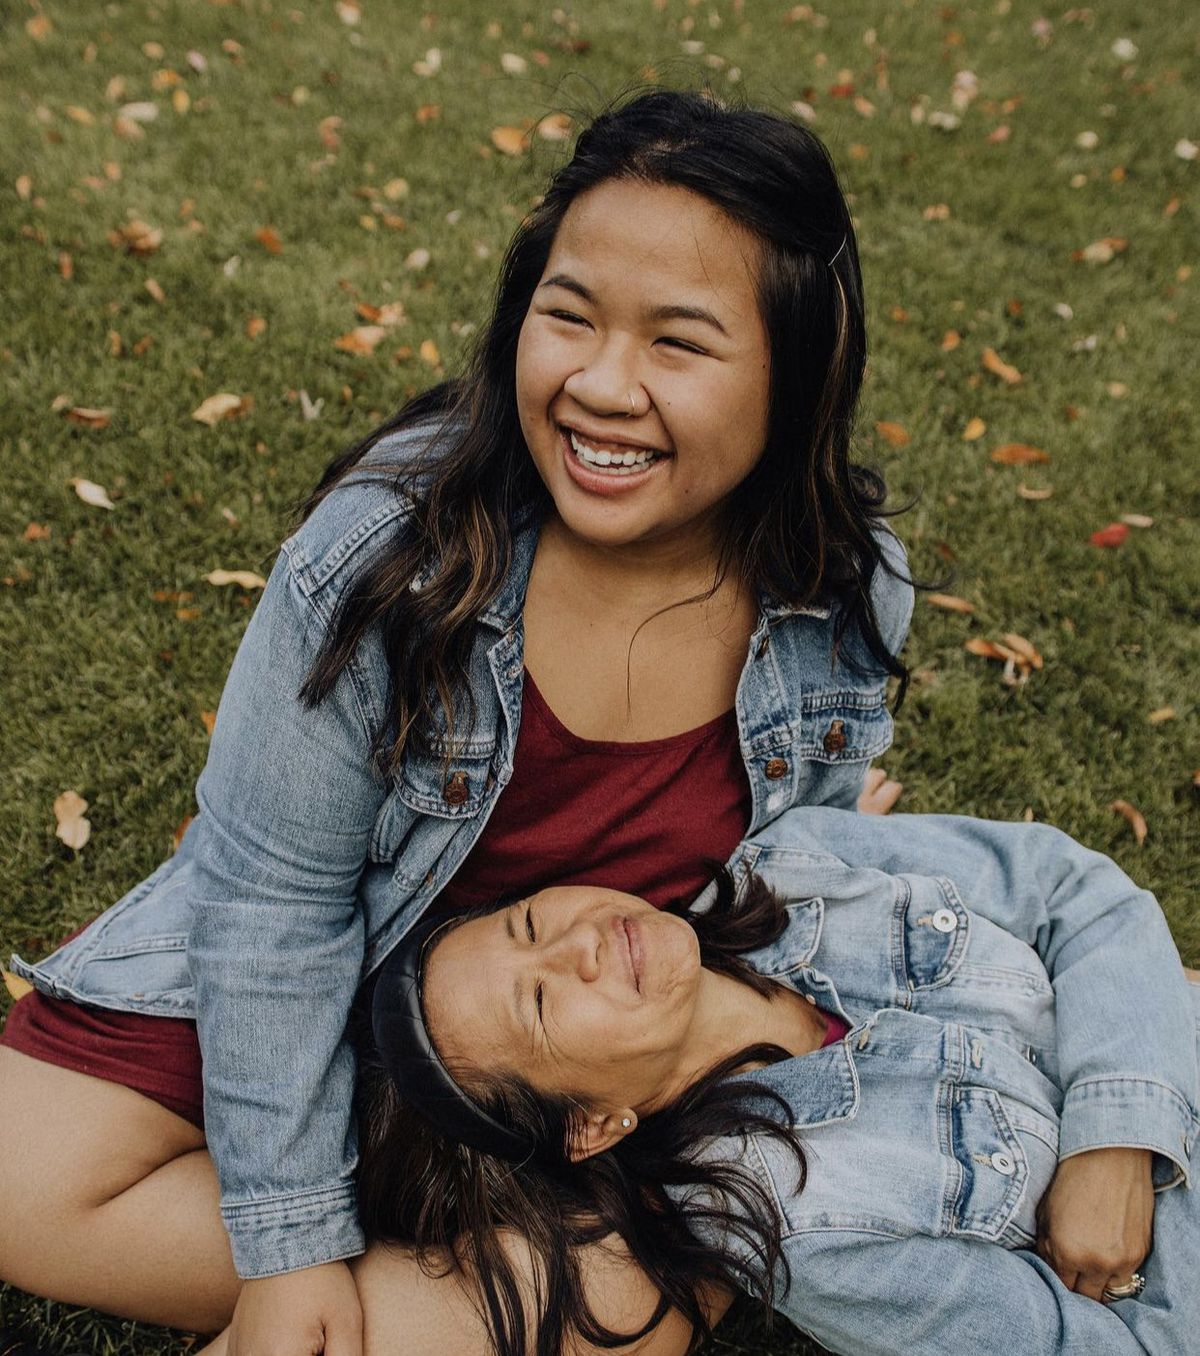 Two smiling women leaning up against each other while sitting on the grass